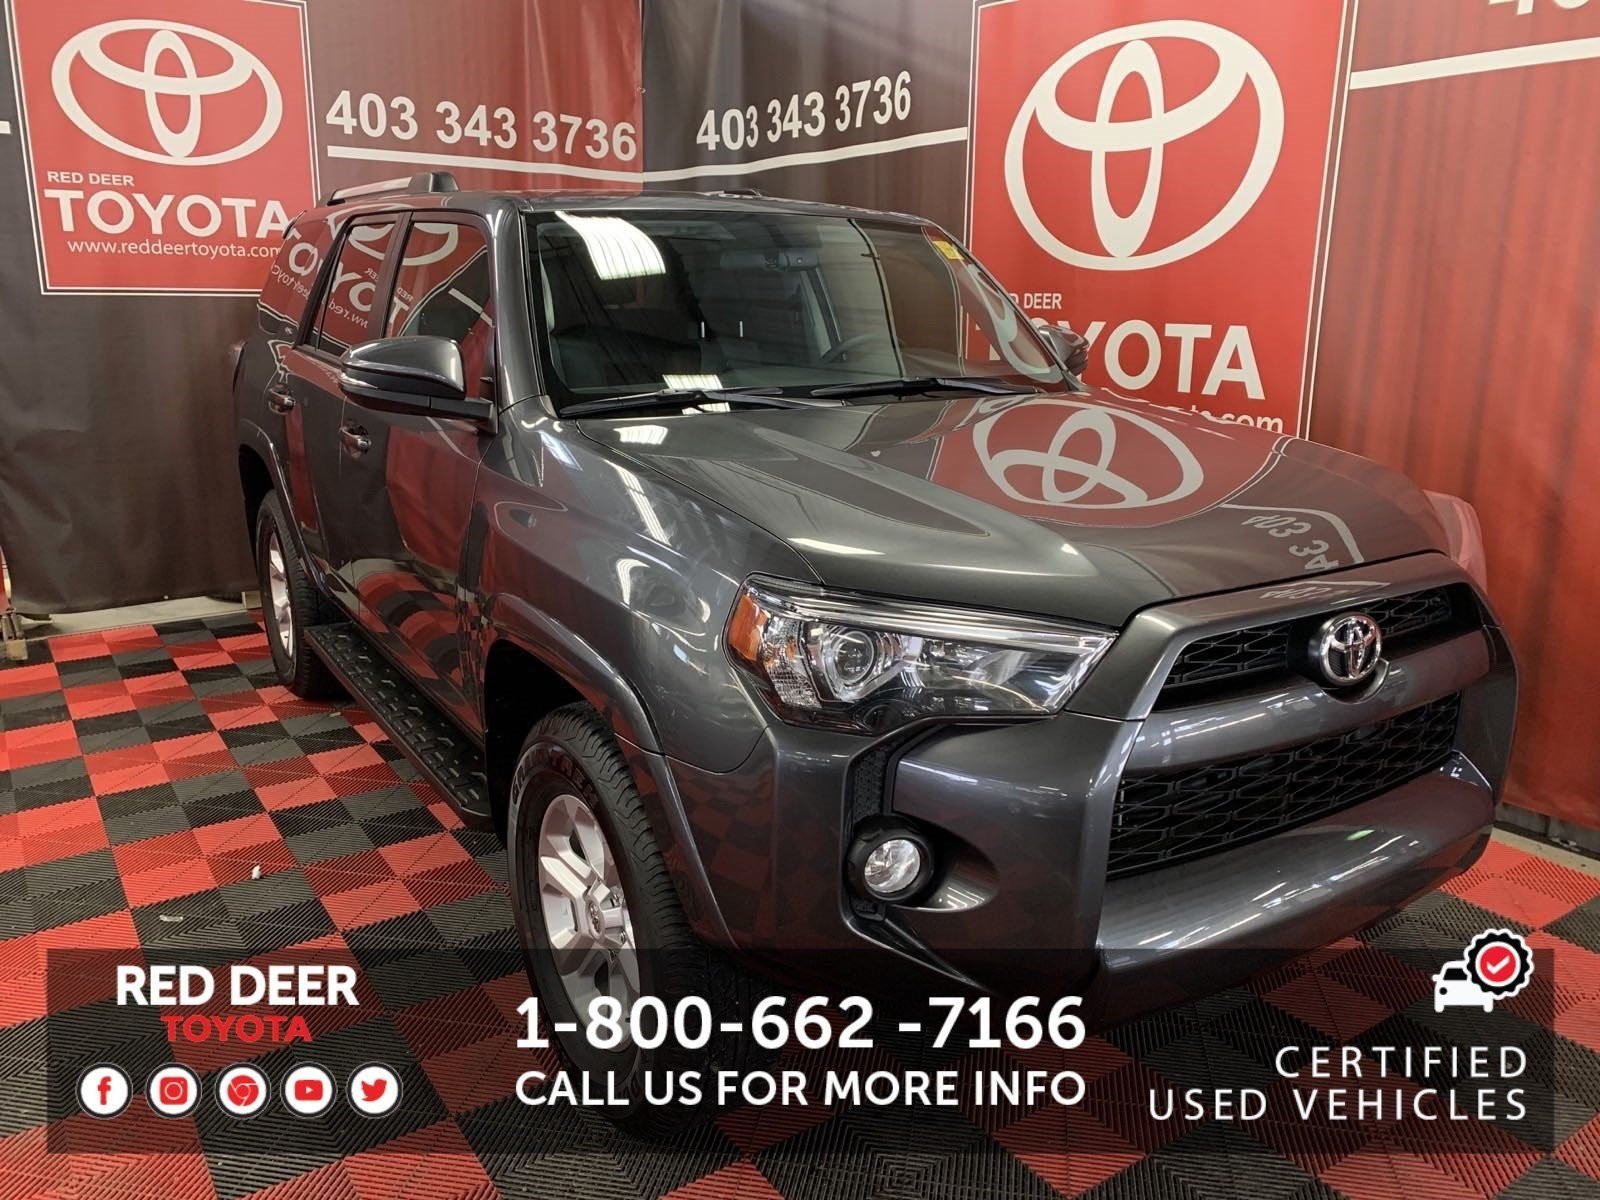 2006 toyota 4runner Parts Diagram Certified Pre Owned 2019 toyota 4runner Sr5 7 Passenger with Navigation & 4wd Of 2006 toyota 4runner Parts Diagram